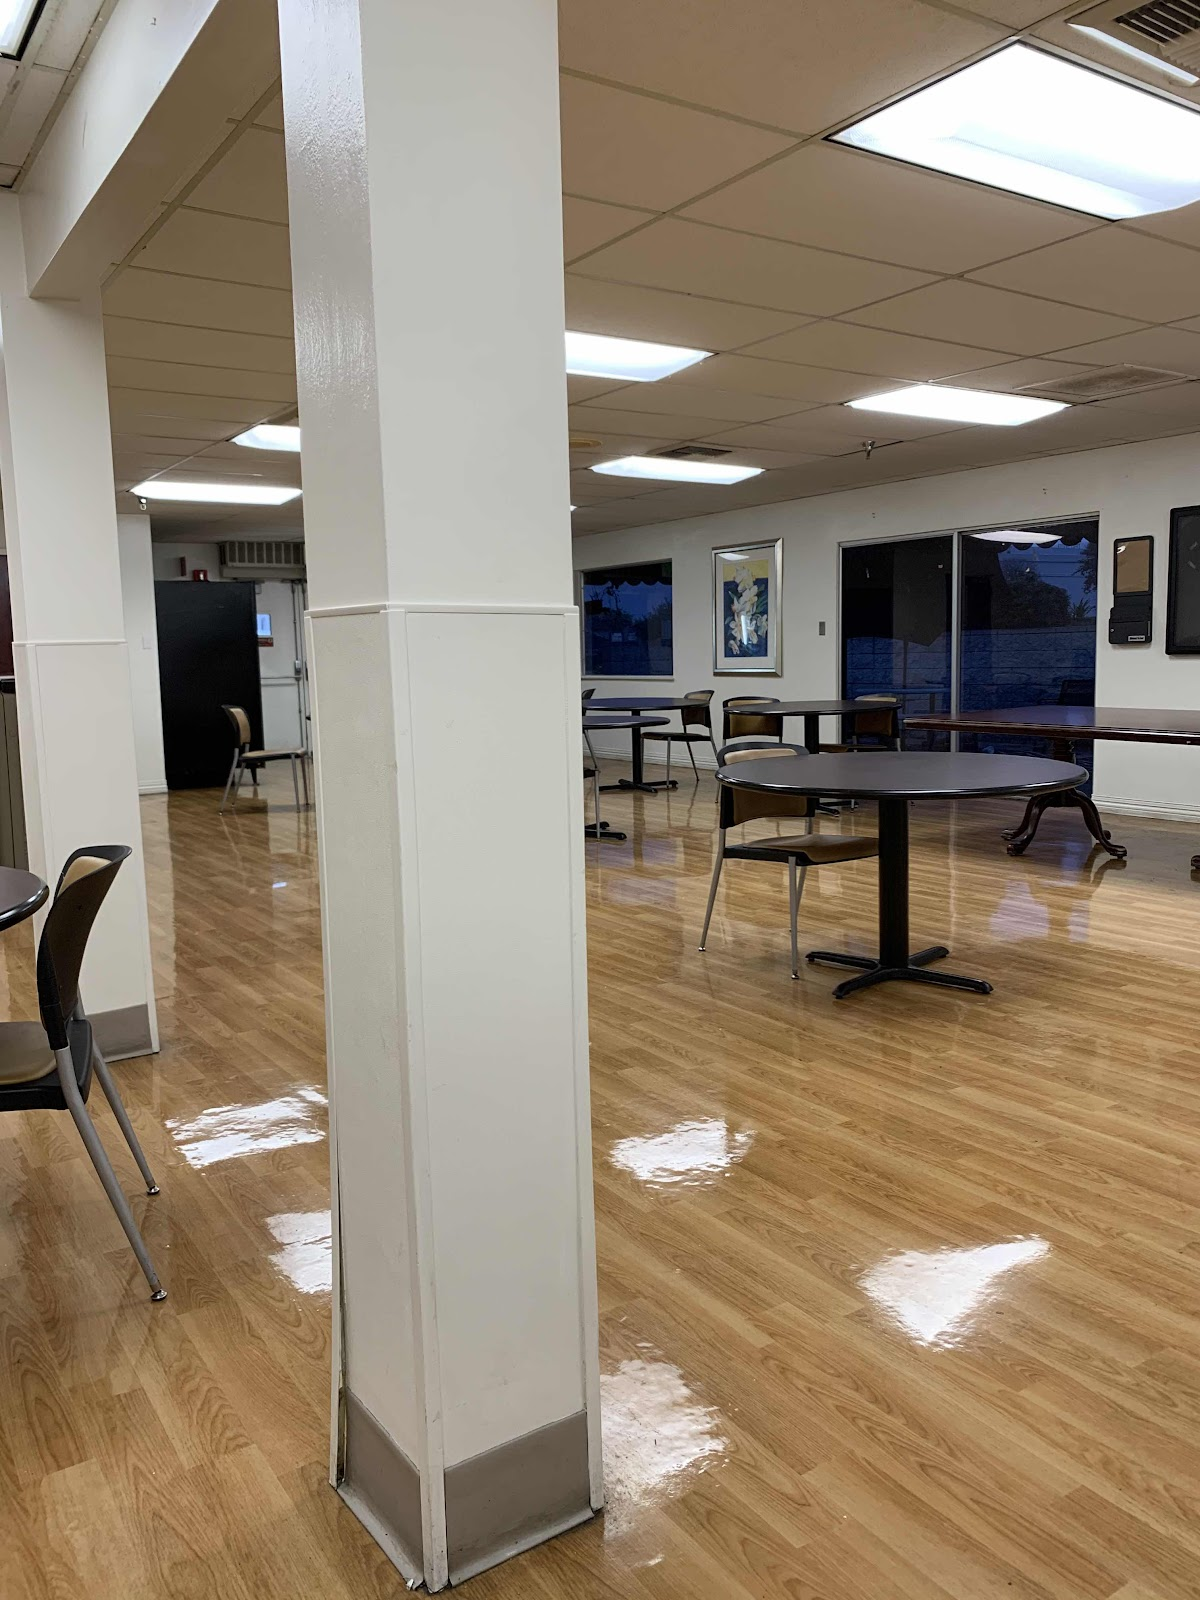 Kindred Hospital dining room